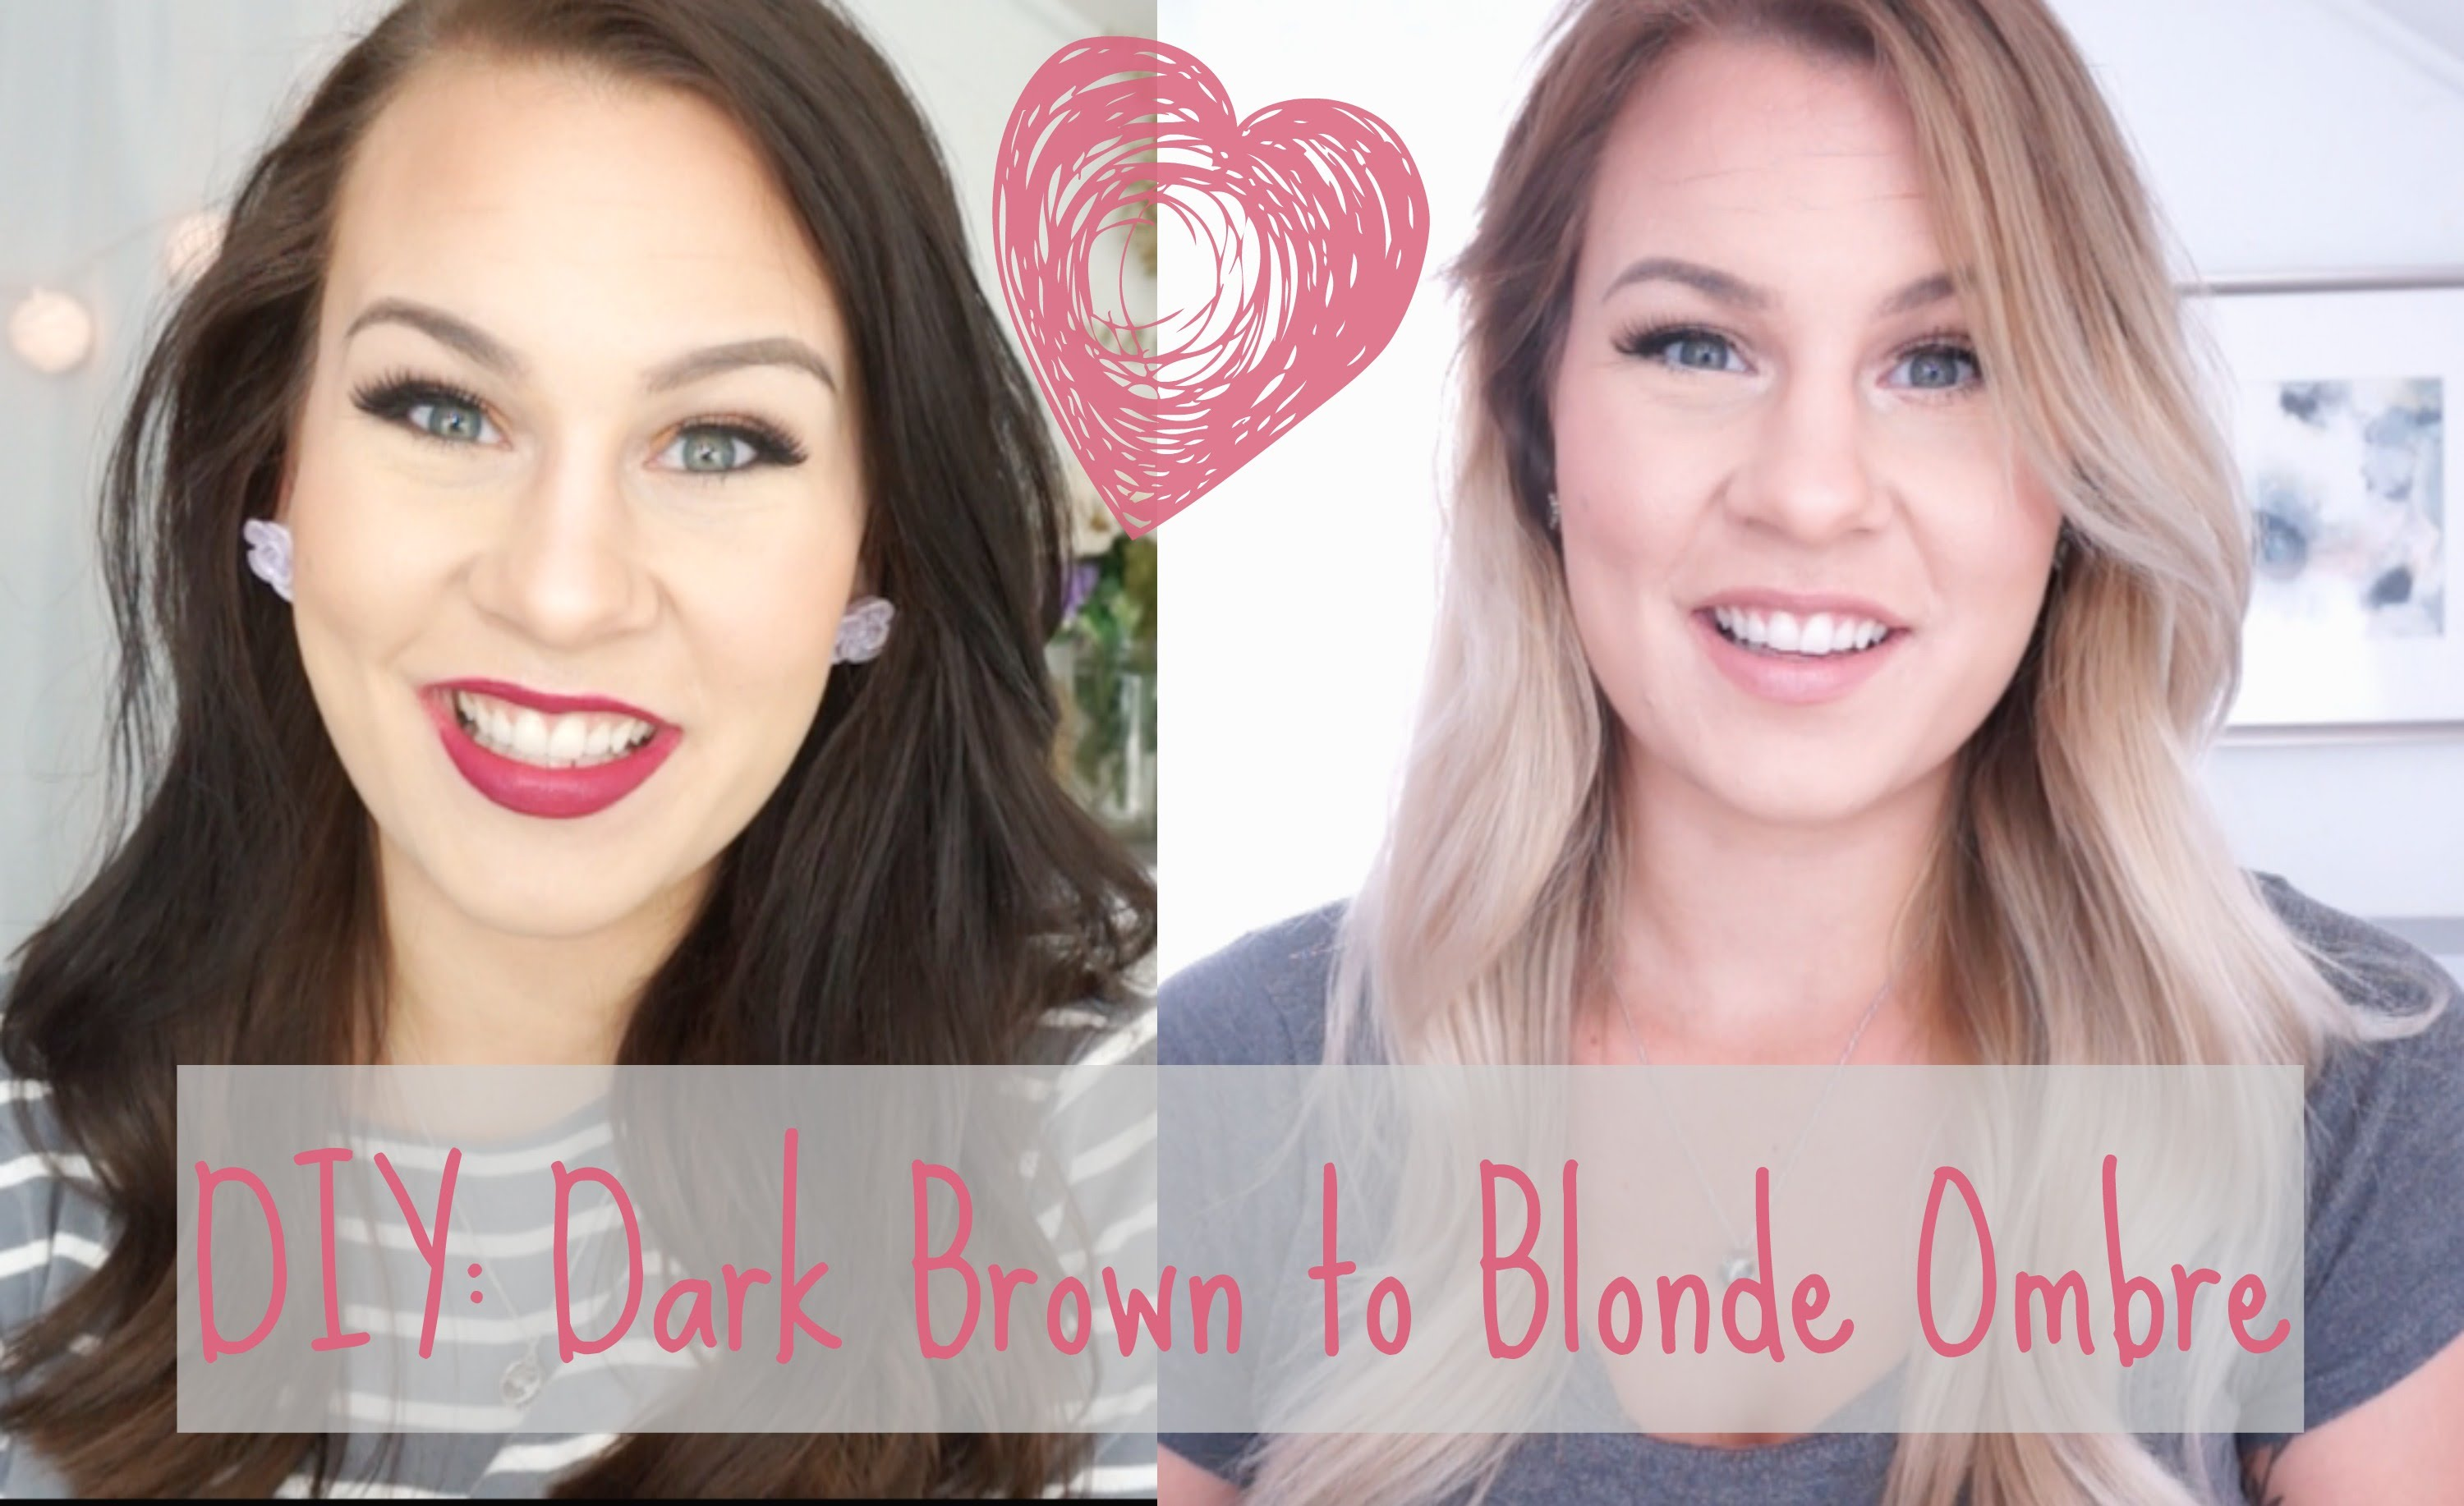 Balayage vs ombre hair 20 beautiful styles diy dark brown to blonde ombre hair solutioingenieria Images